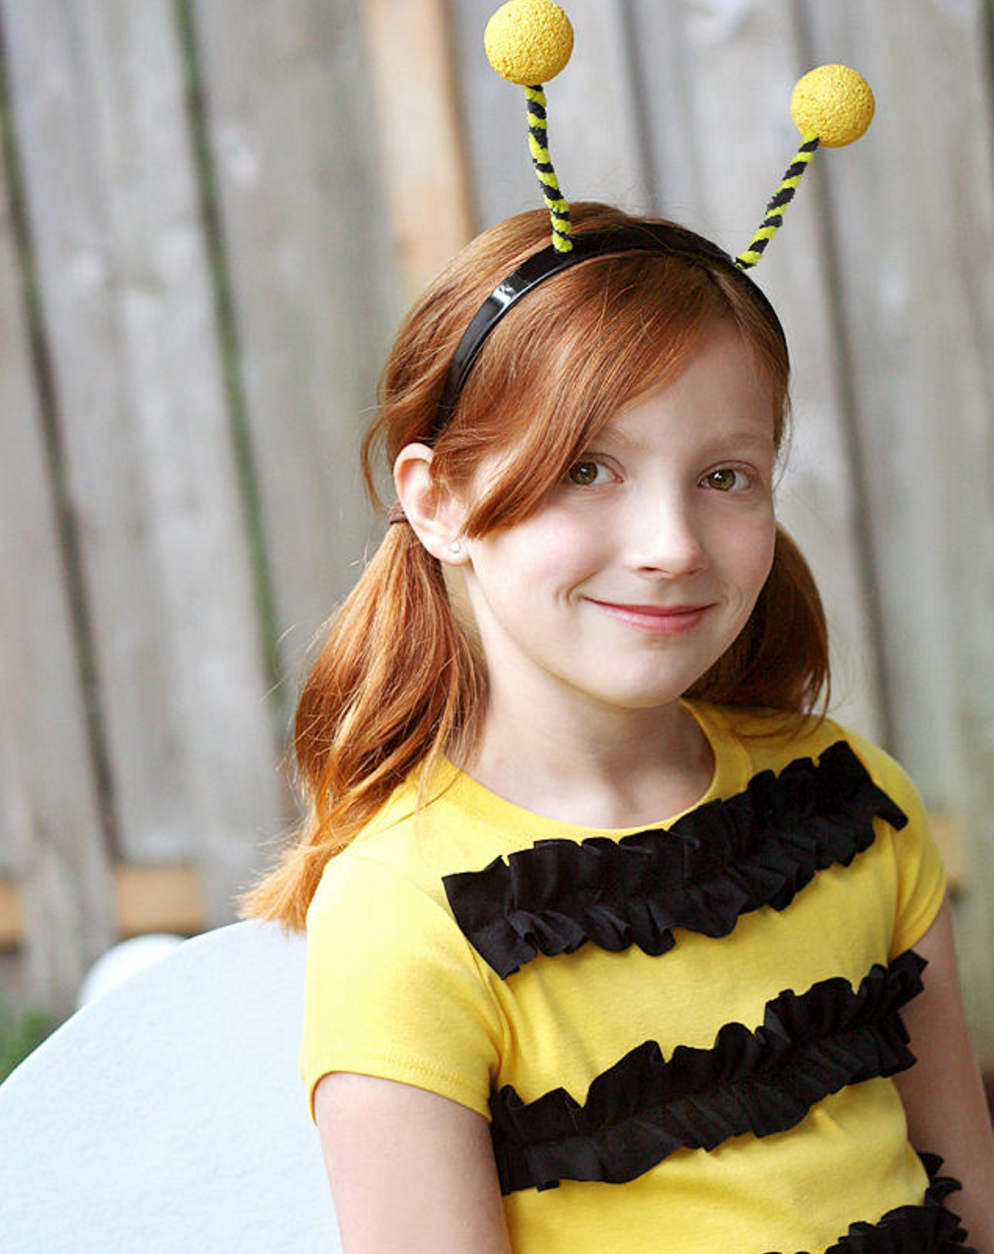 If you're busy as a bee, make this costume for your kids this Halloween